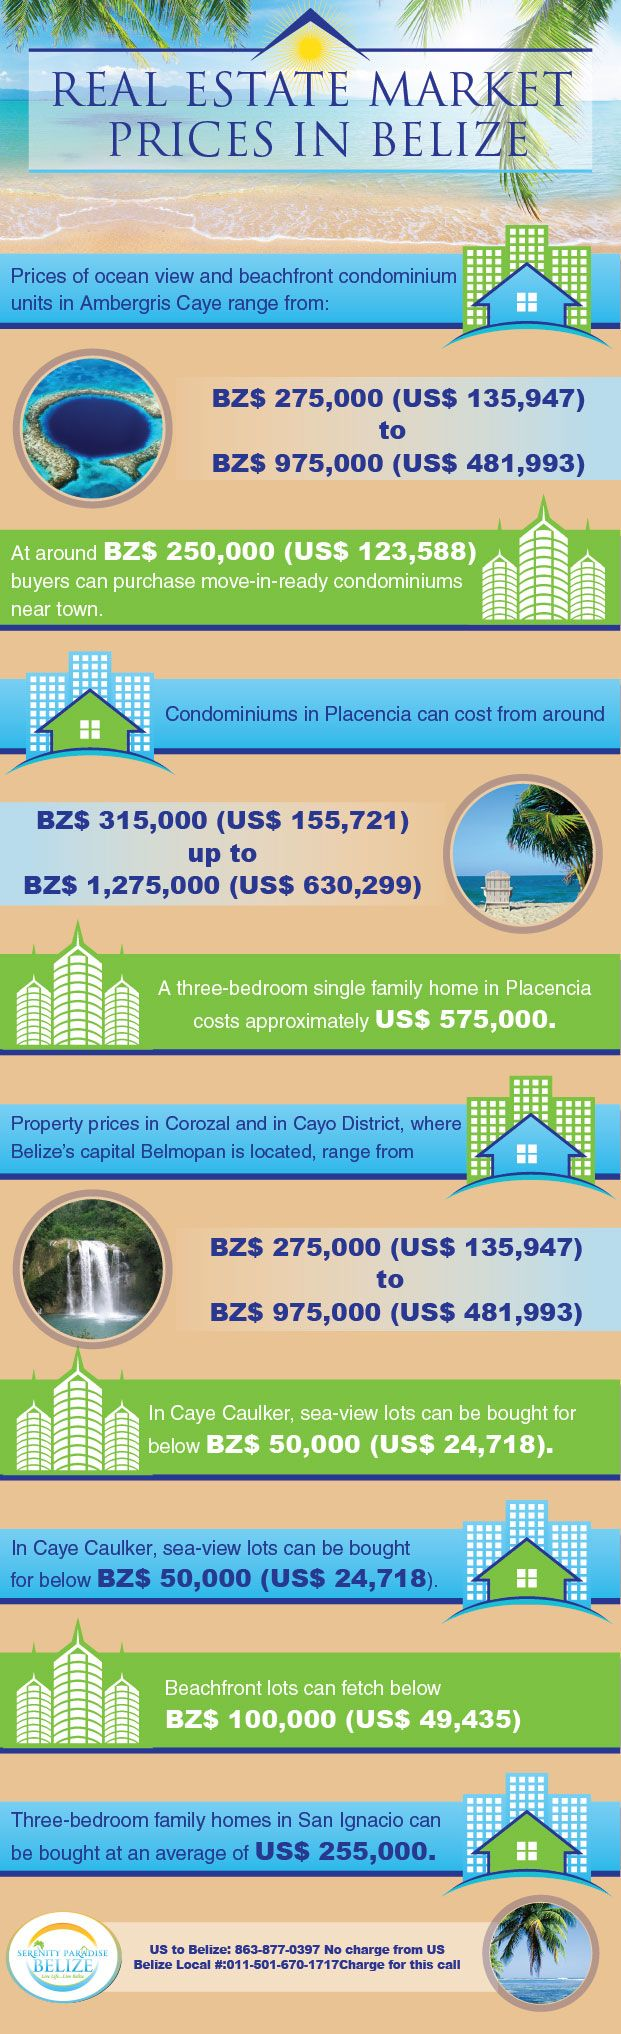 Serenity Paradise is the builder of residential lots in Belize, only 1800ft from the beautiful Corozal Bay. Our residential lots begin at the price of